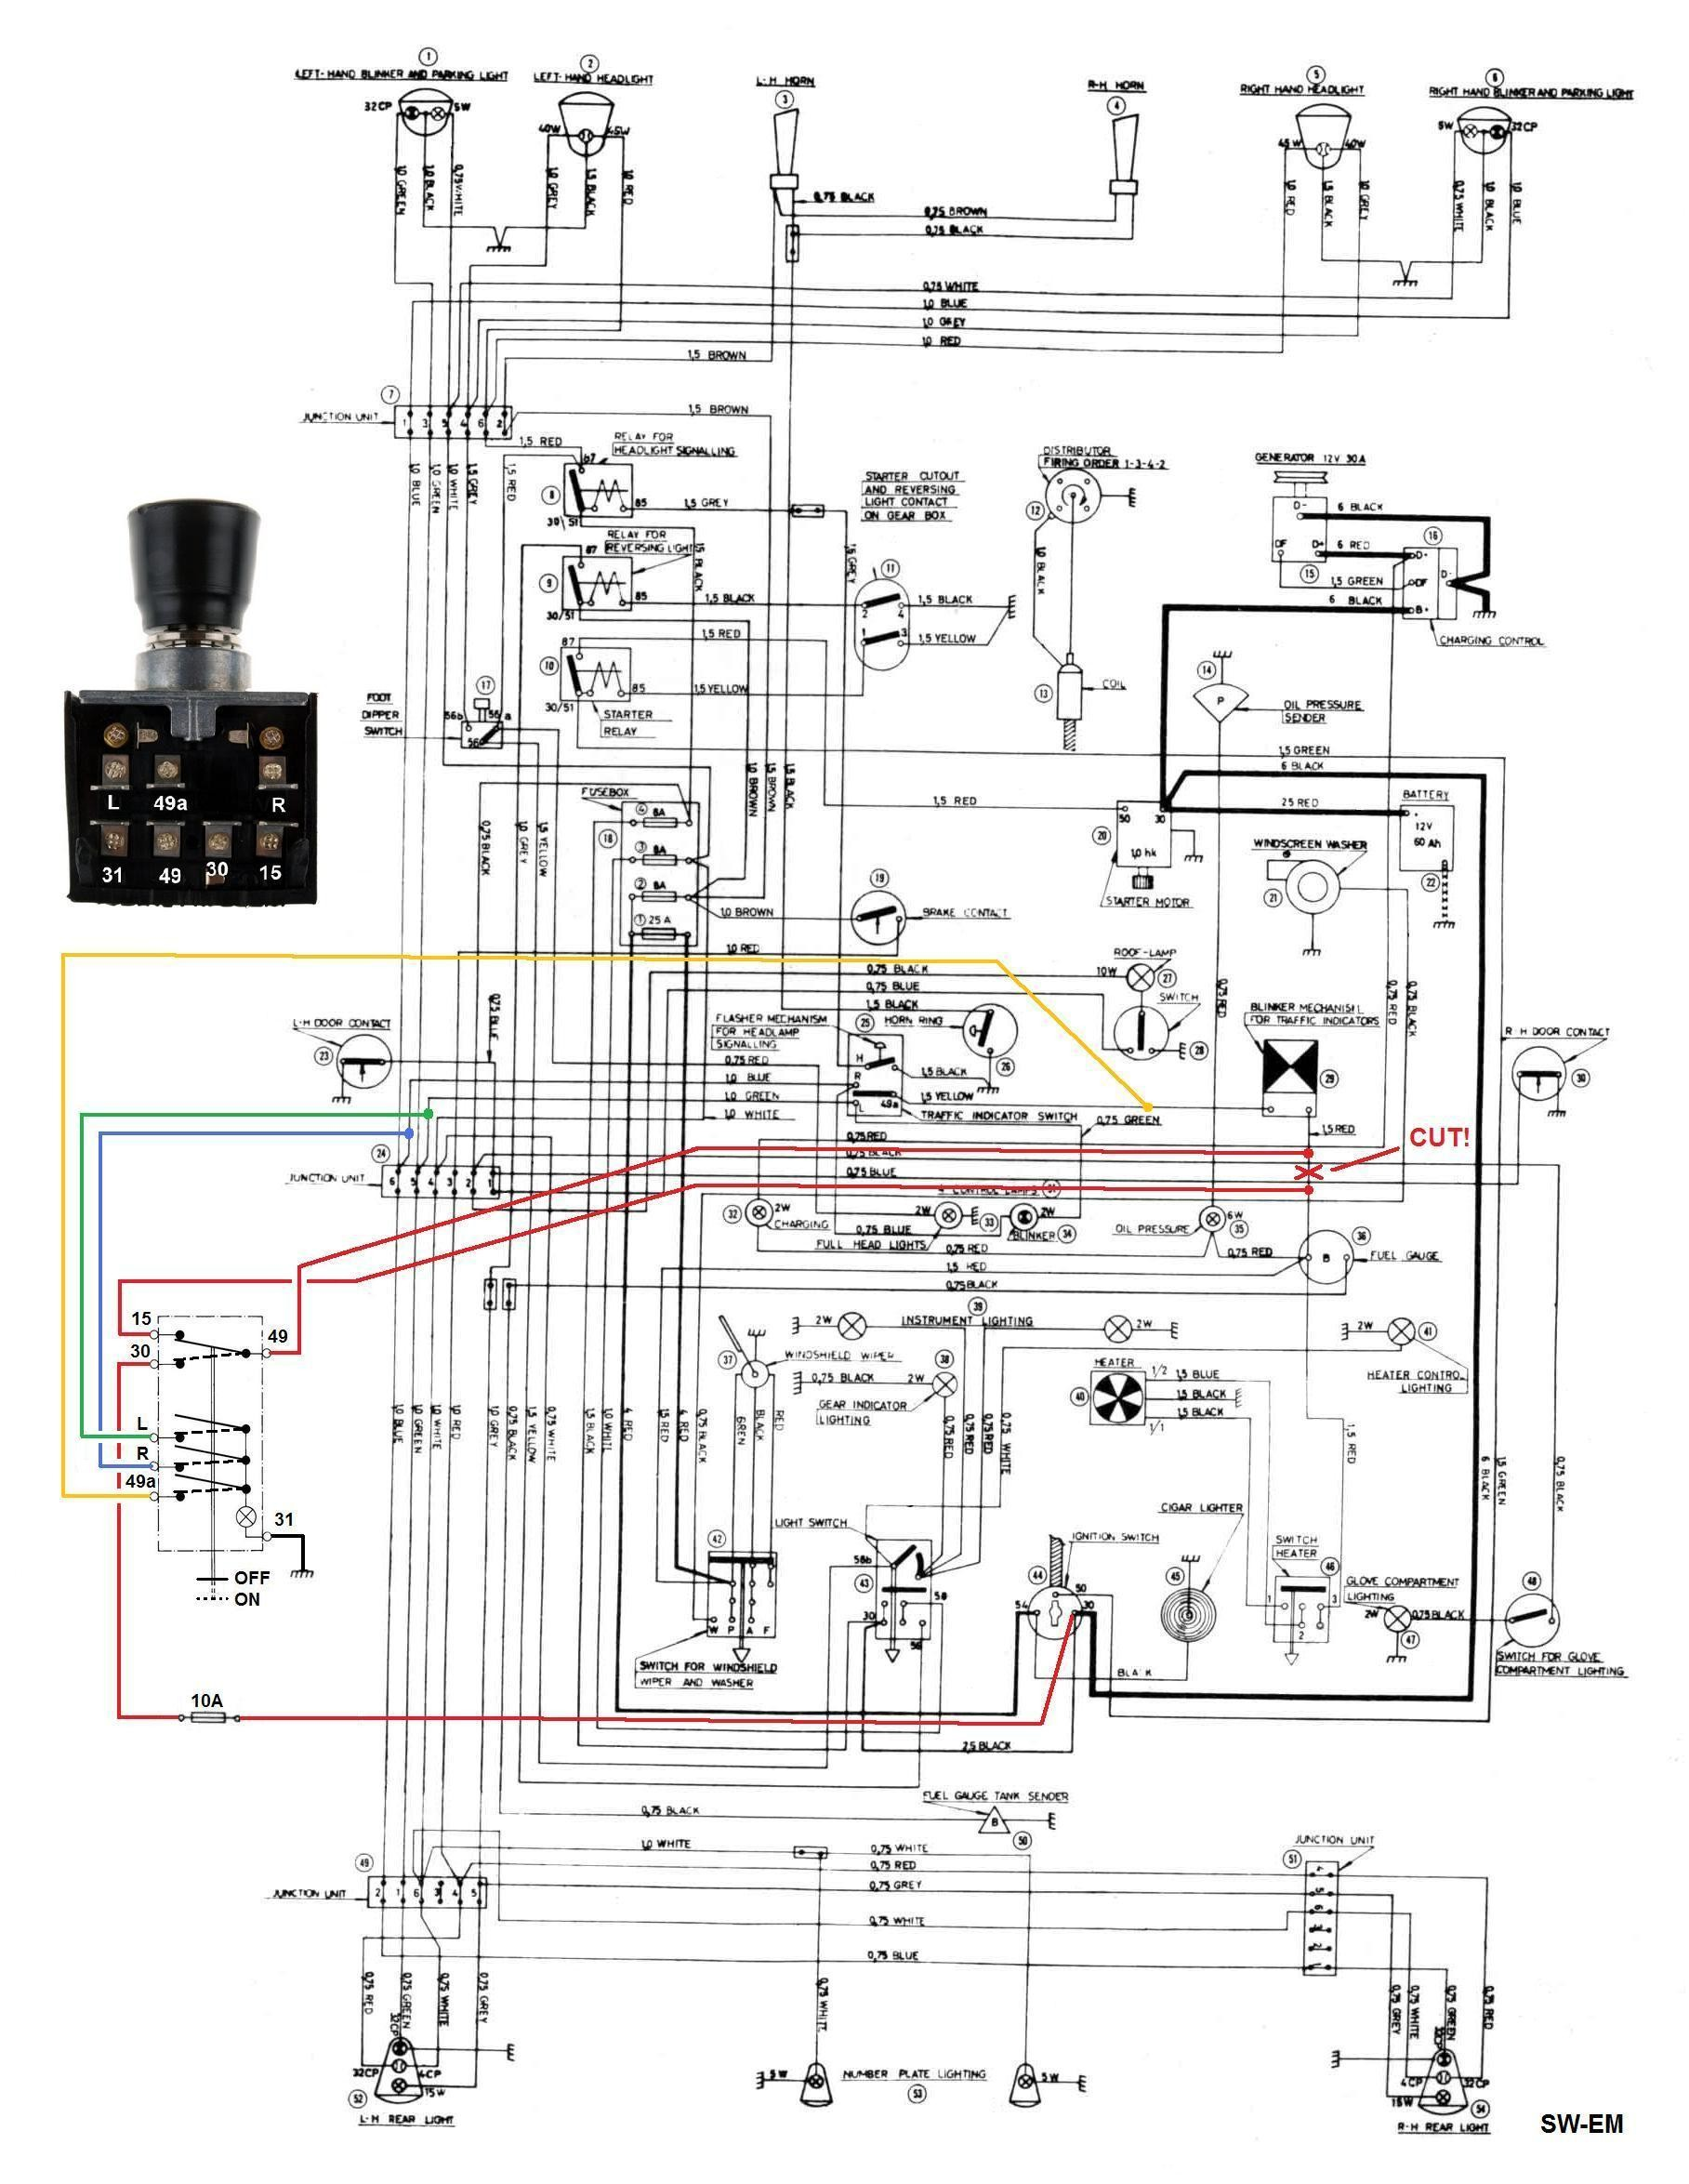 Signal Light Flasher Wiring Diagram Sw Em Emergency My Of